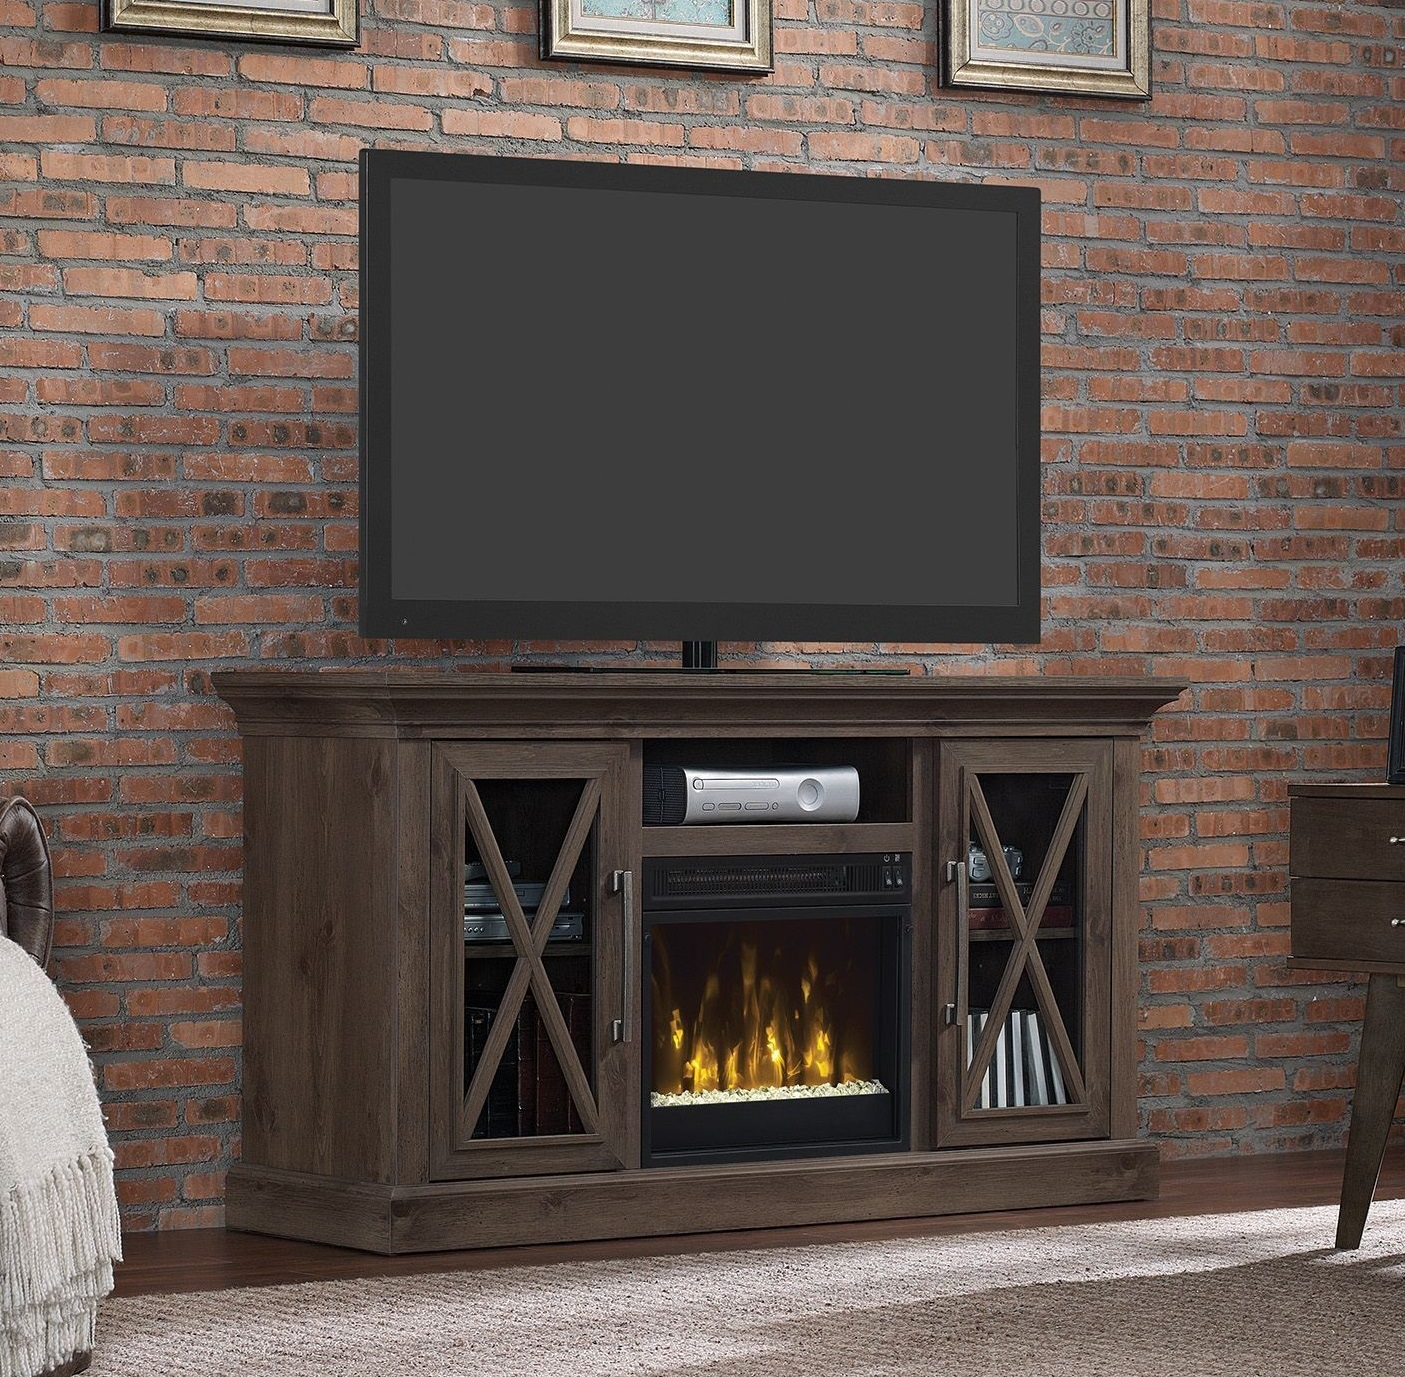 black touchstone home heat fireplace electric inc valueline products wide recessed crystal wall logset color inch